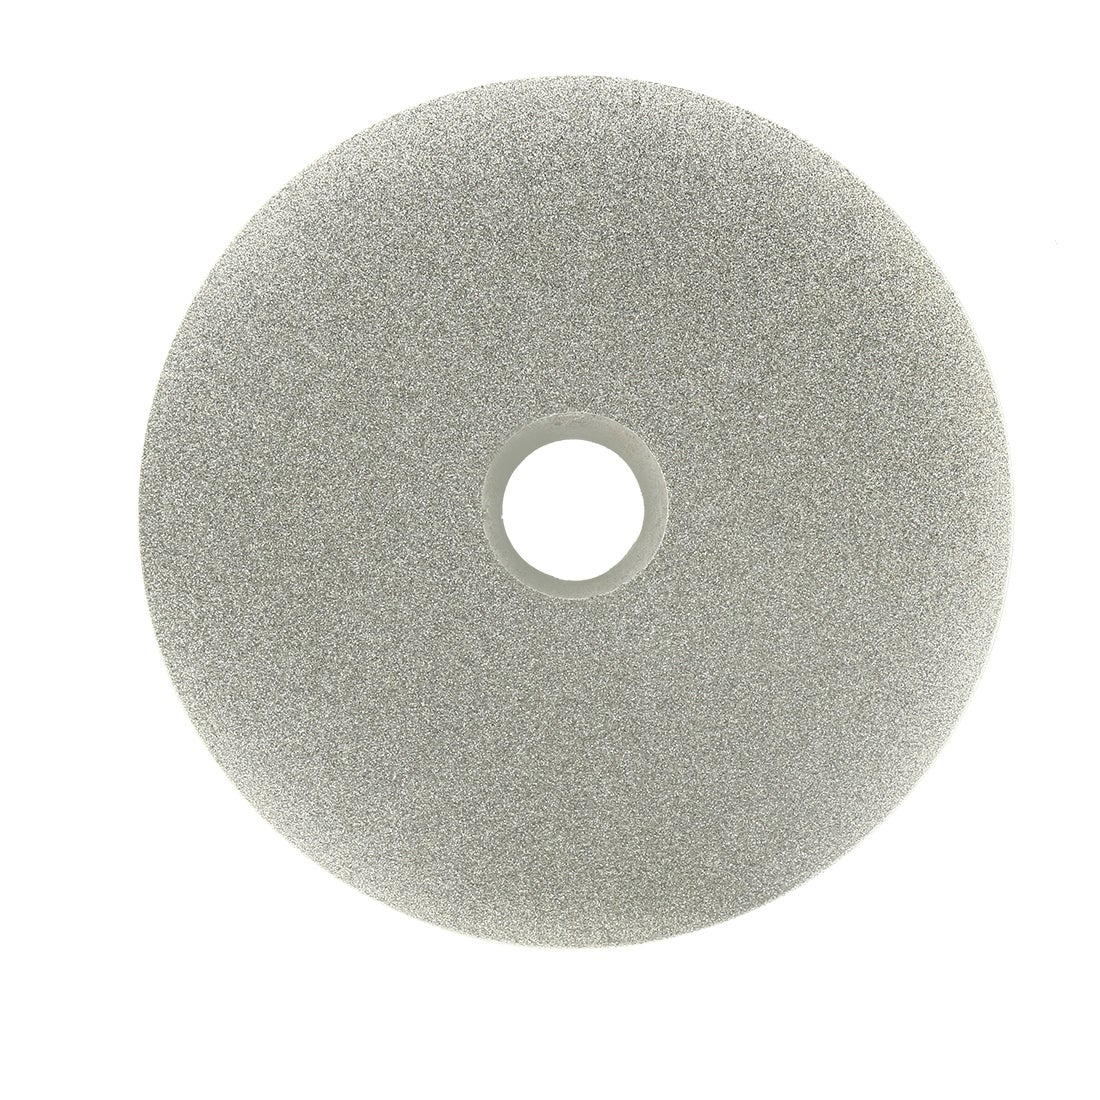 100mm 4 Inch Diamond Coated Grinding Wheel Grinder Silver Tone